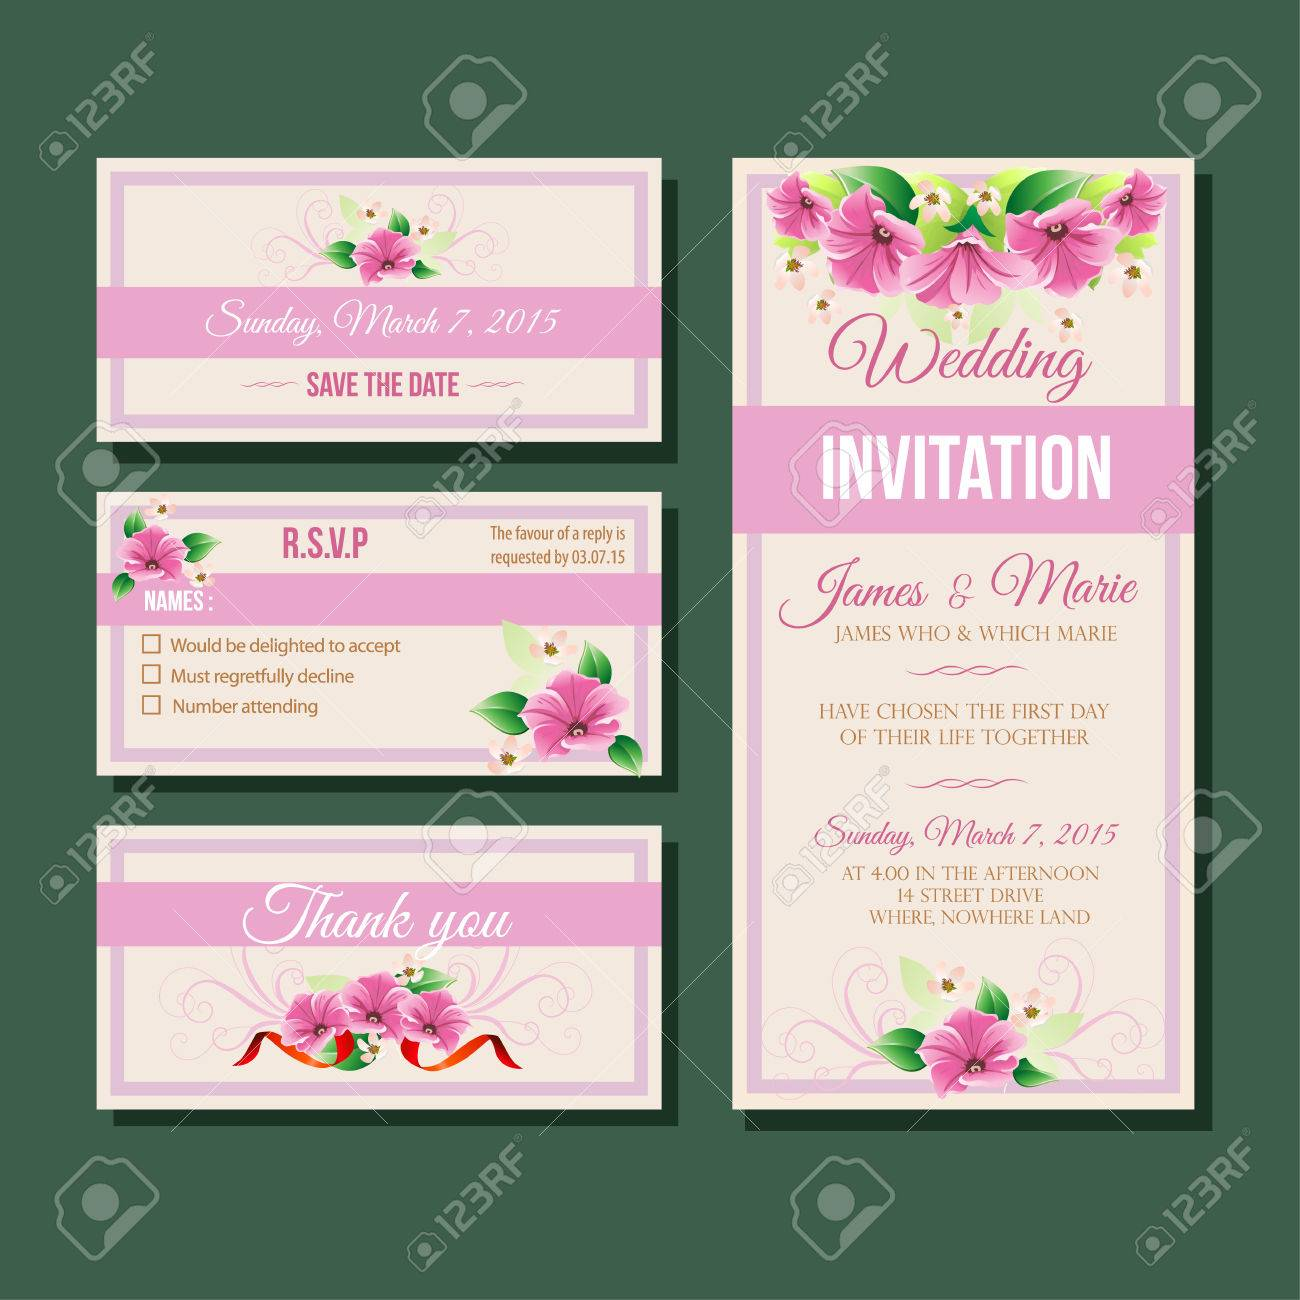 Purple Wedding Invitation Template Royalty Free Cliparts Vectors